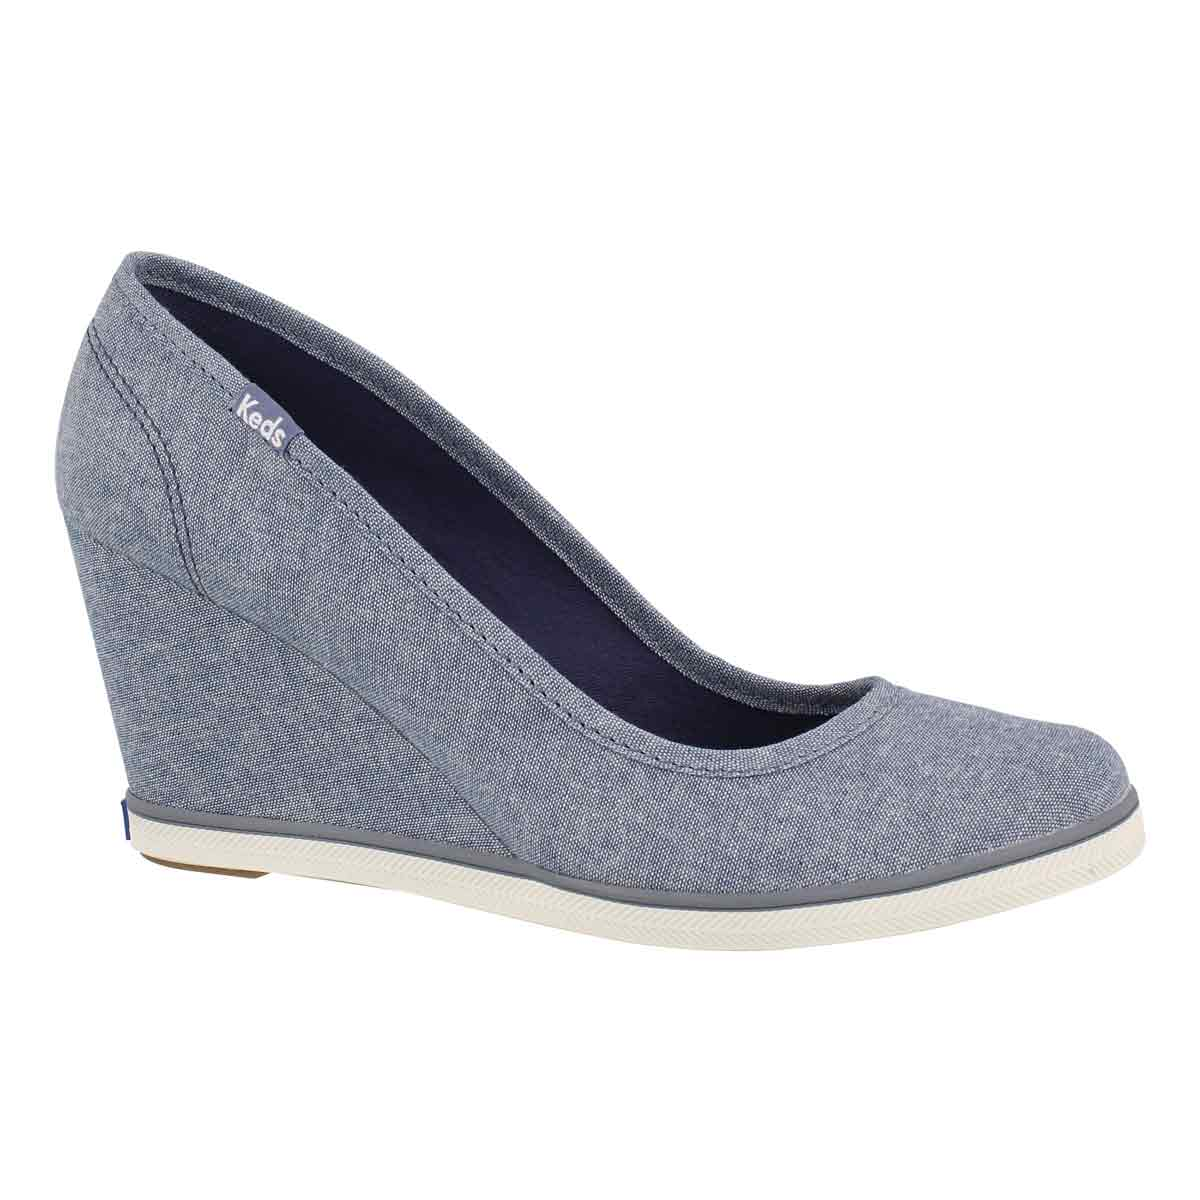 9f3db46346c Keds Women s DAMSEL blue chambray wedge